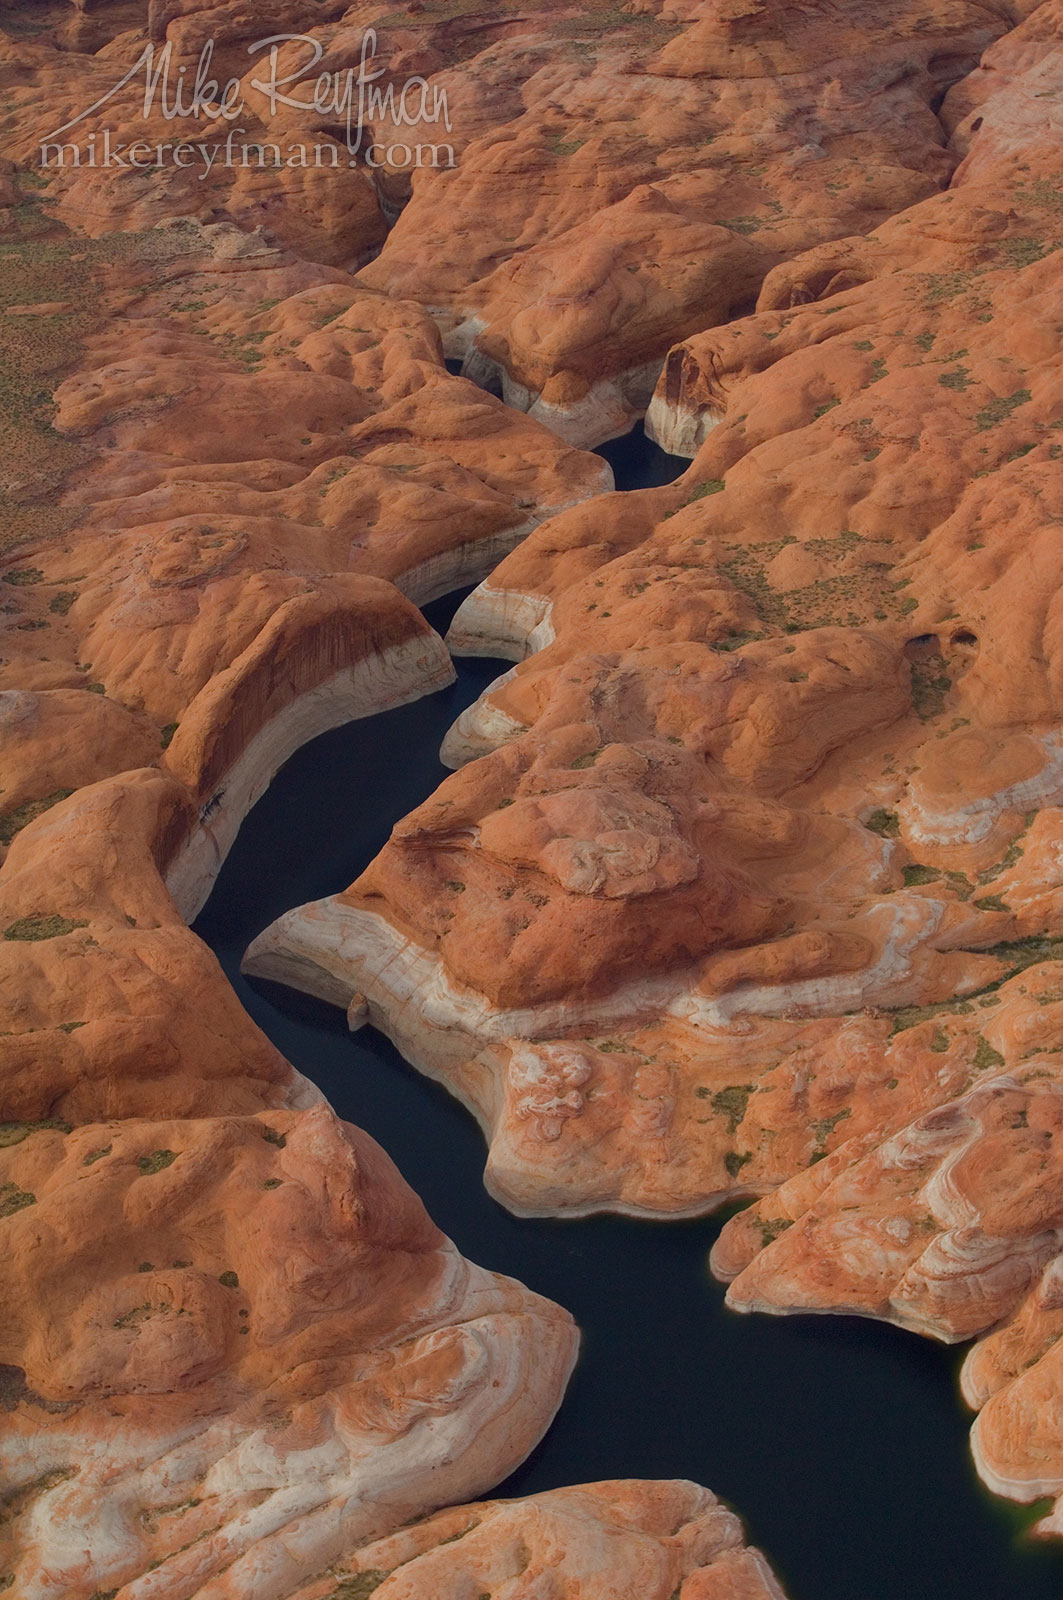 Driftwood Canyon Inlet. Glen Canyon NRA, Lake Powell, Utah/Arizona, US. Aerial. 082-LP3_MER6842.jpg - Lake Powell, Glen Canyon NAR. Colorado and Sun Juan Rivers. Utah/Arizona, USA  - Mike Reyfman Photography